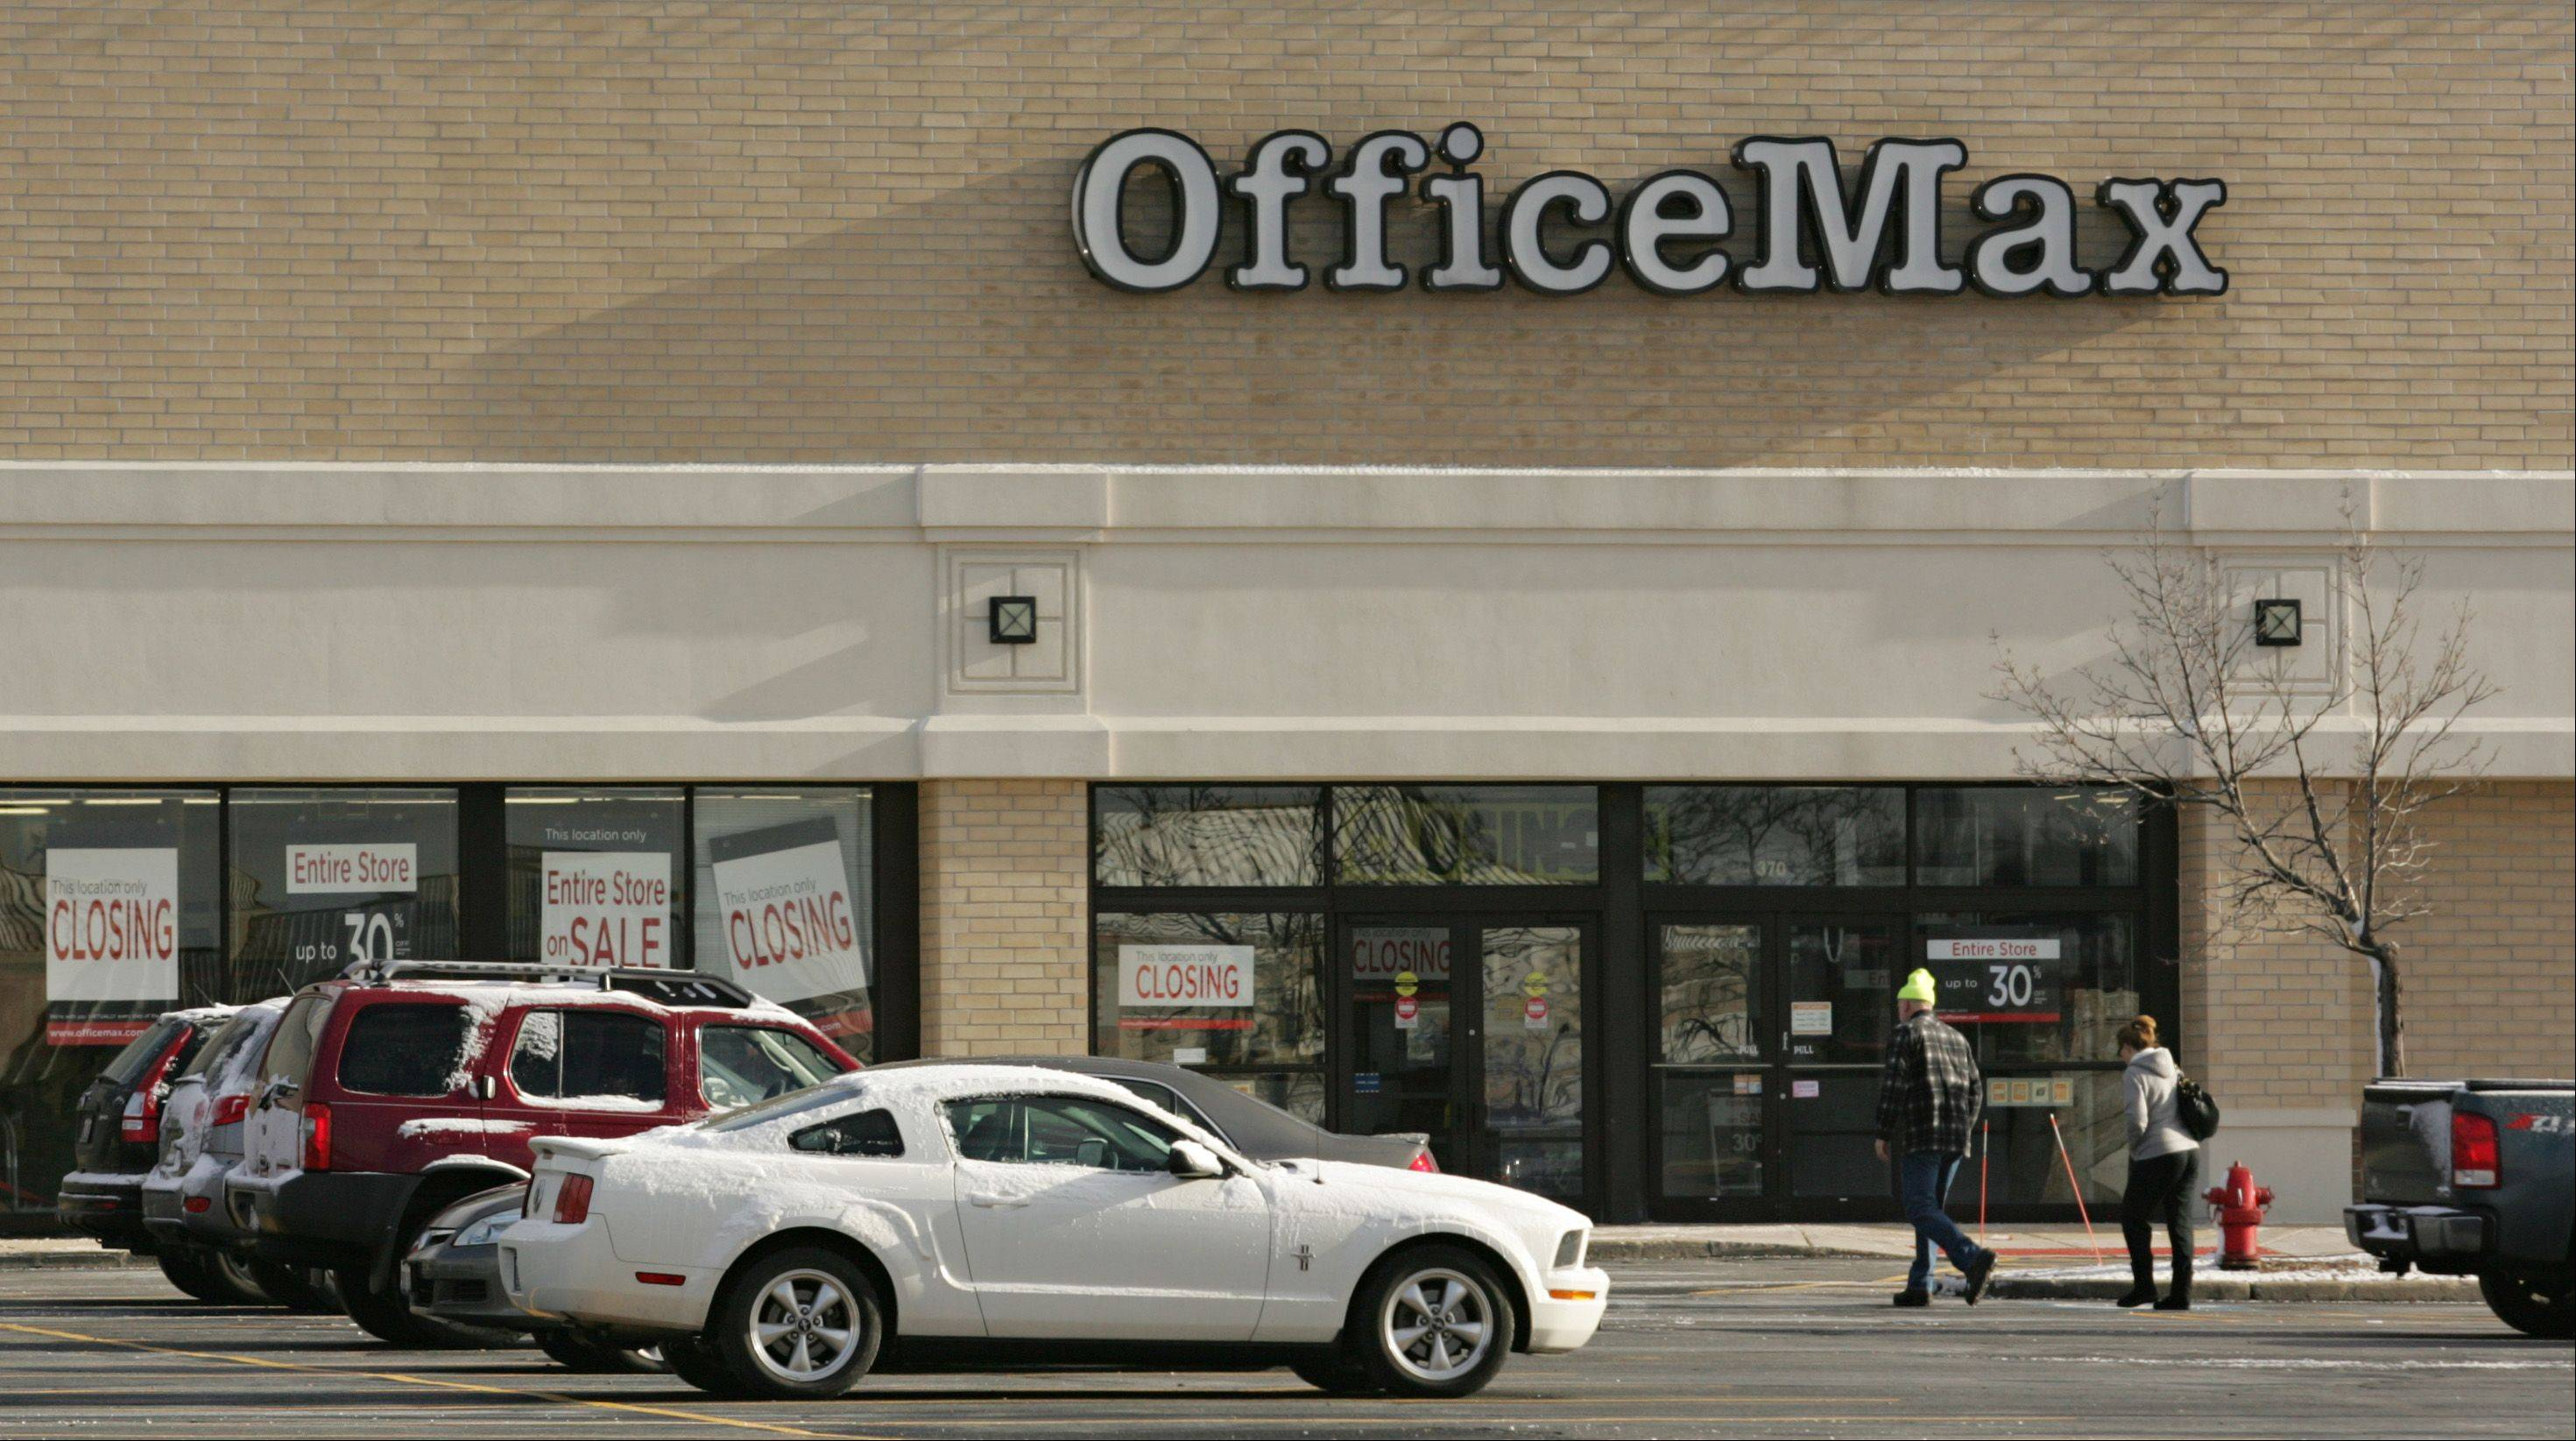 Office Max in West Dundee, which has been open since 1993, is closing in March. An official said the company is closing that location to focus on newer stores nearby. Its 16 employees will be placed at other stores.